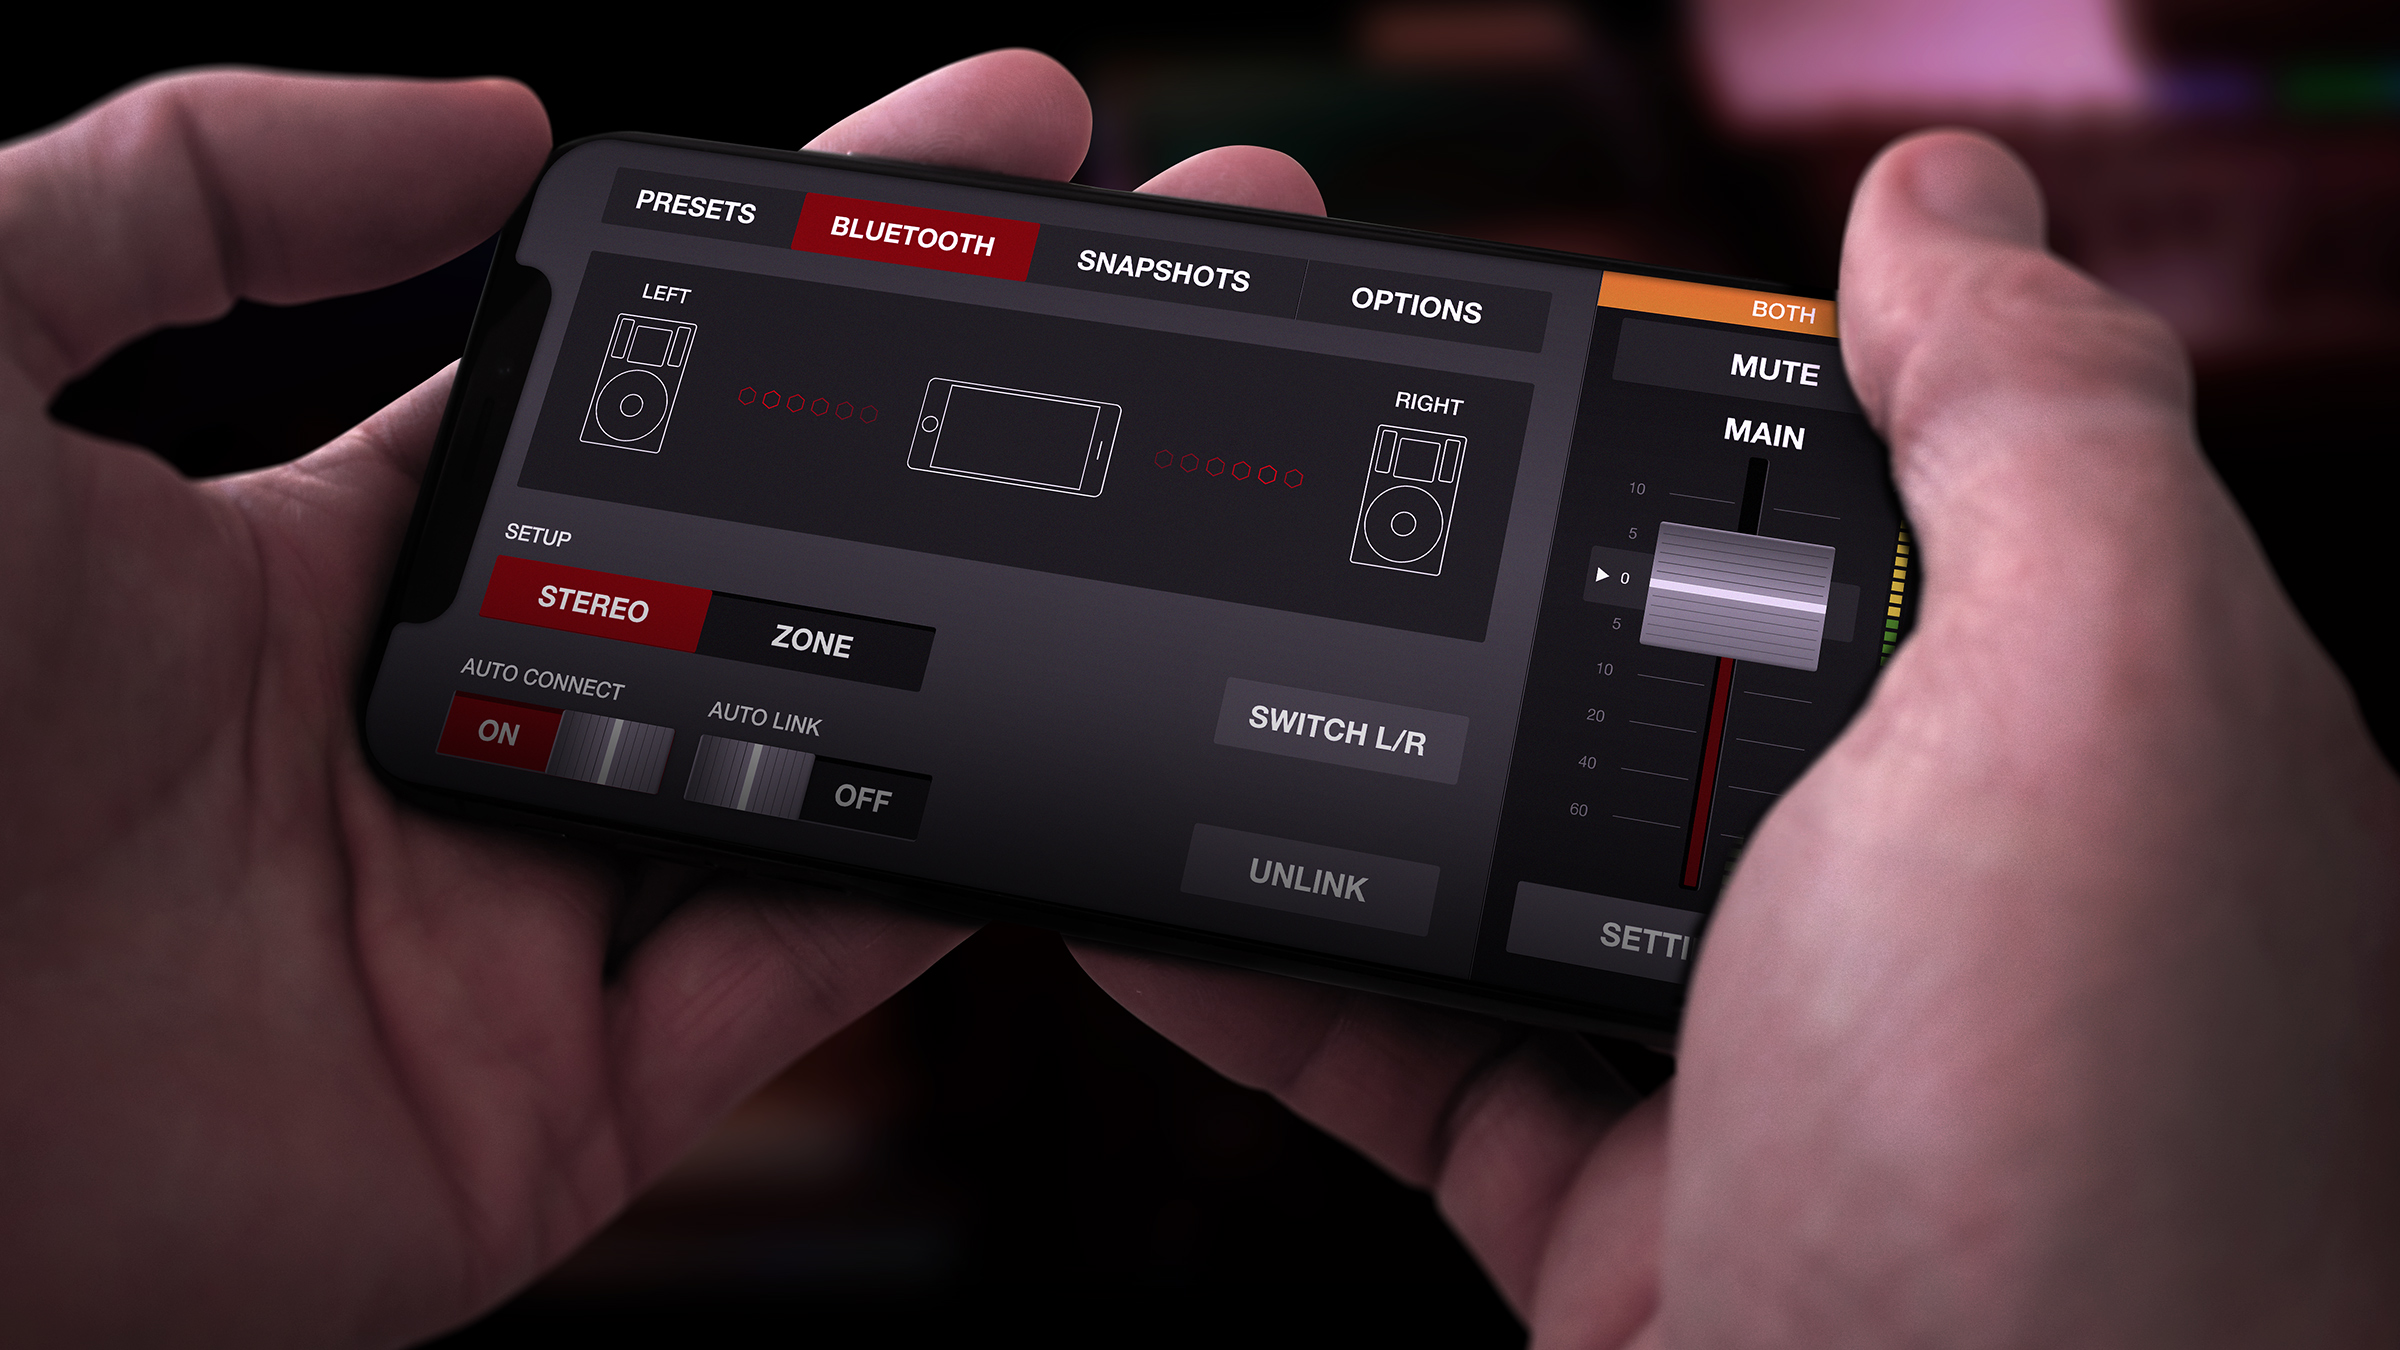 The app connected to the Martin Audio loud speakers via Bluetooth technology. We created a series of animations and feedback designs.